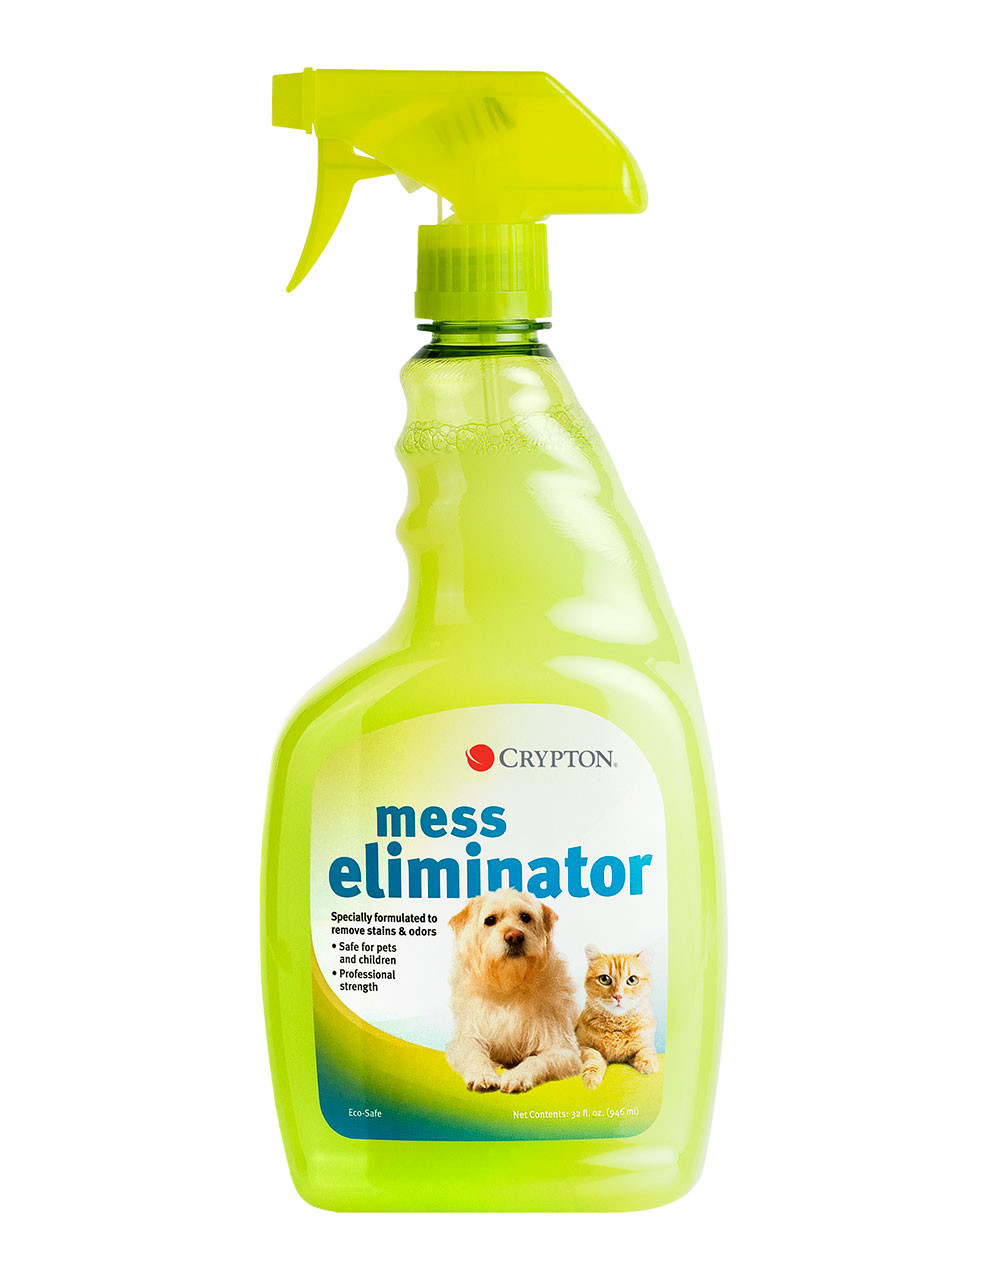 Mess Eliminator for Pets - Crypton Store